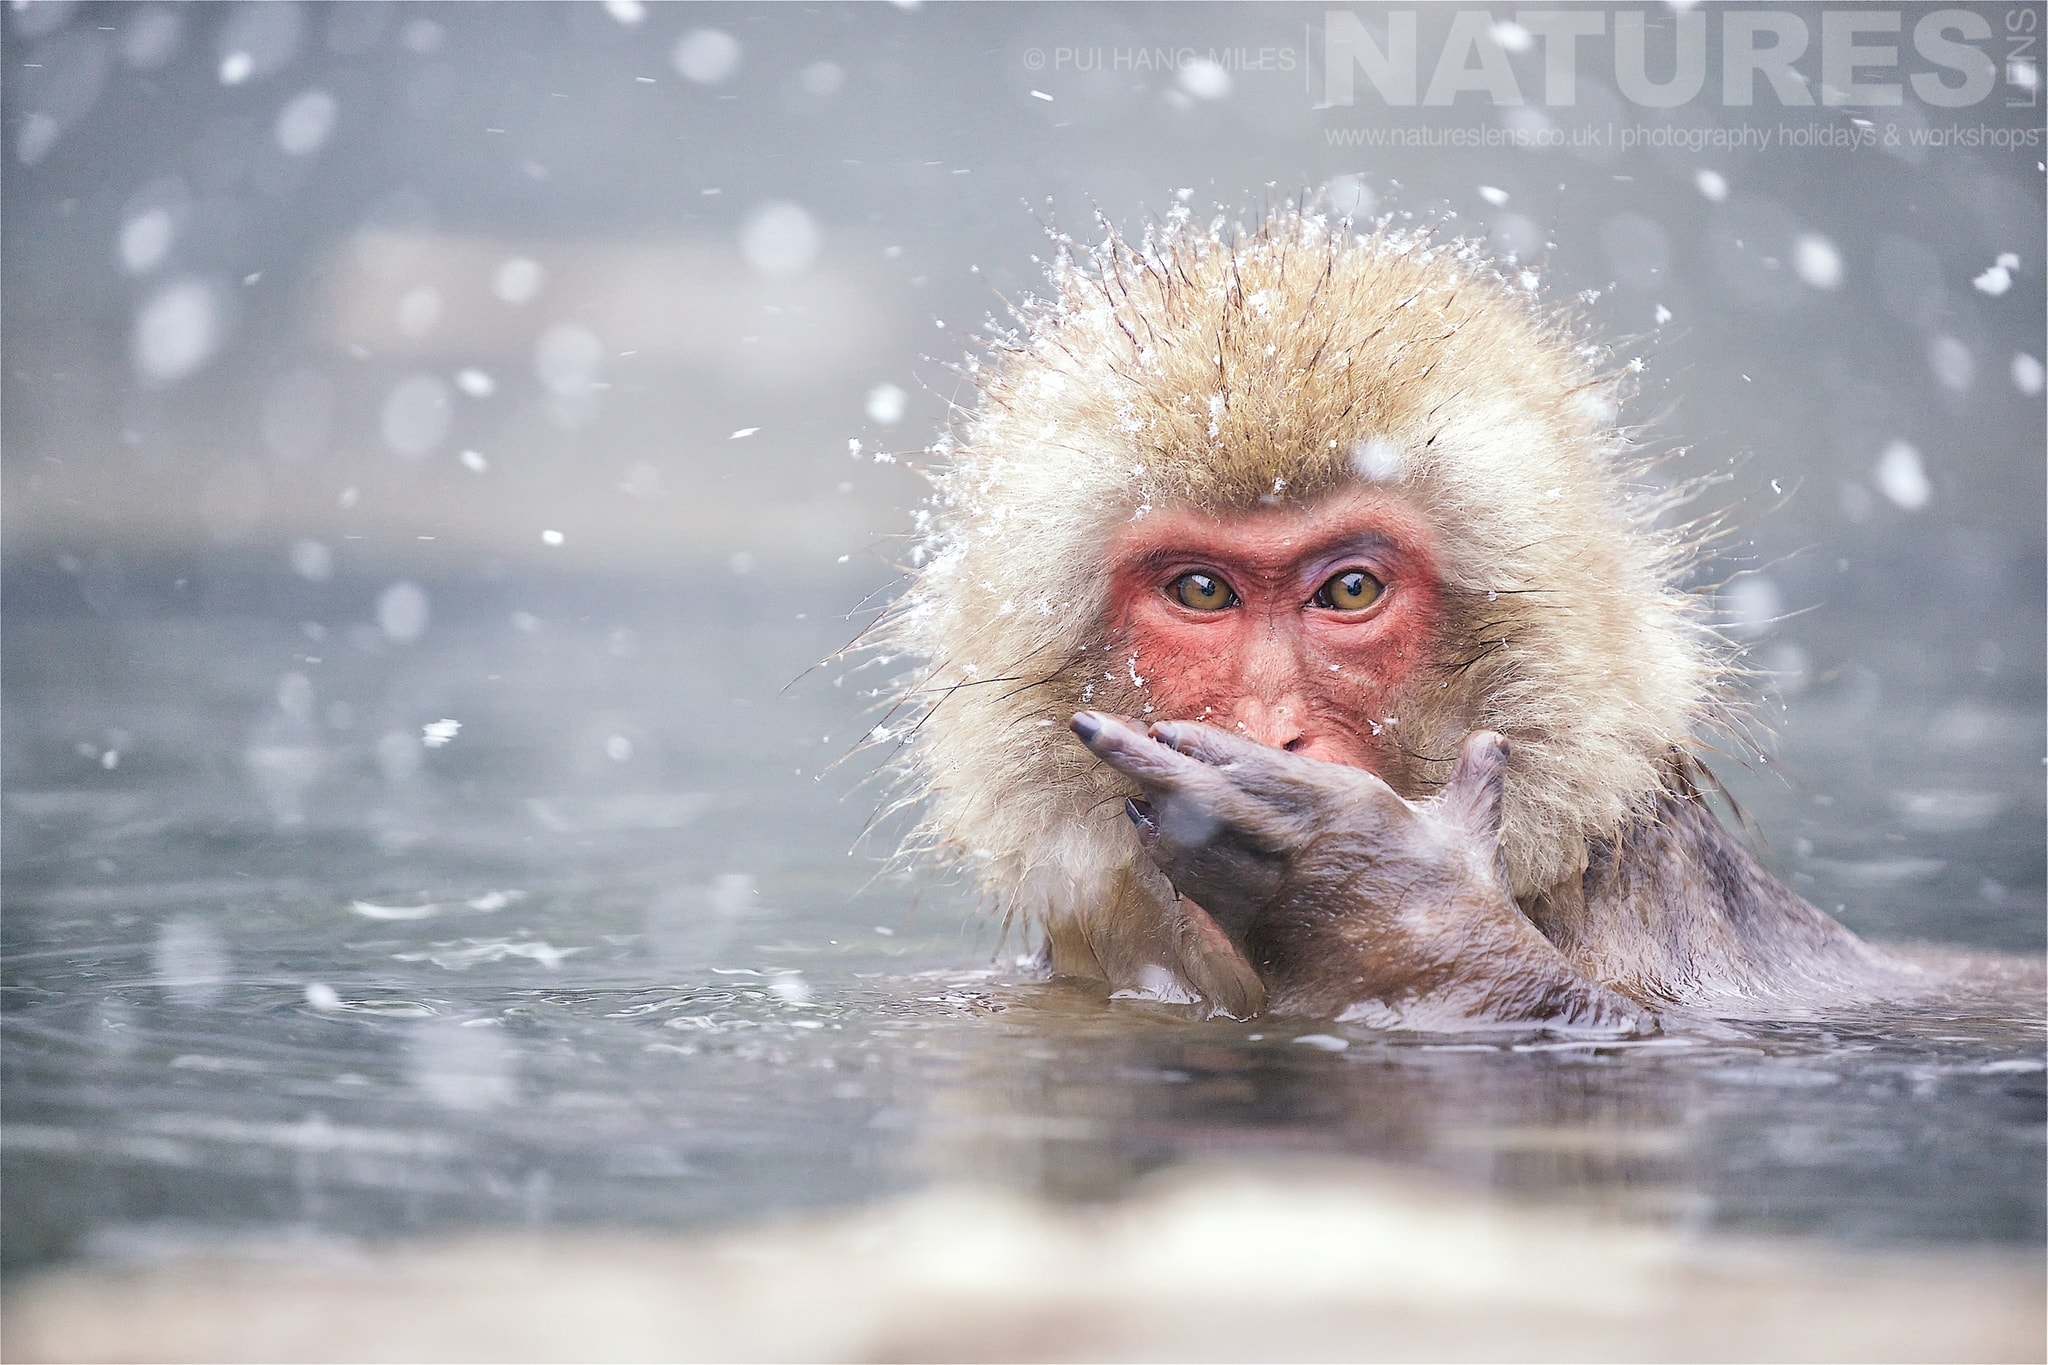 One Of The Bathing Snow Monkeys Of Jigokudani Yaen Koen  Photographed During The Winter Wildlife Of Japan Photography Holiday